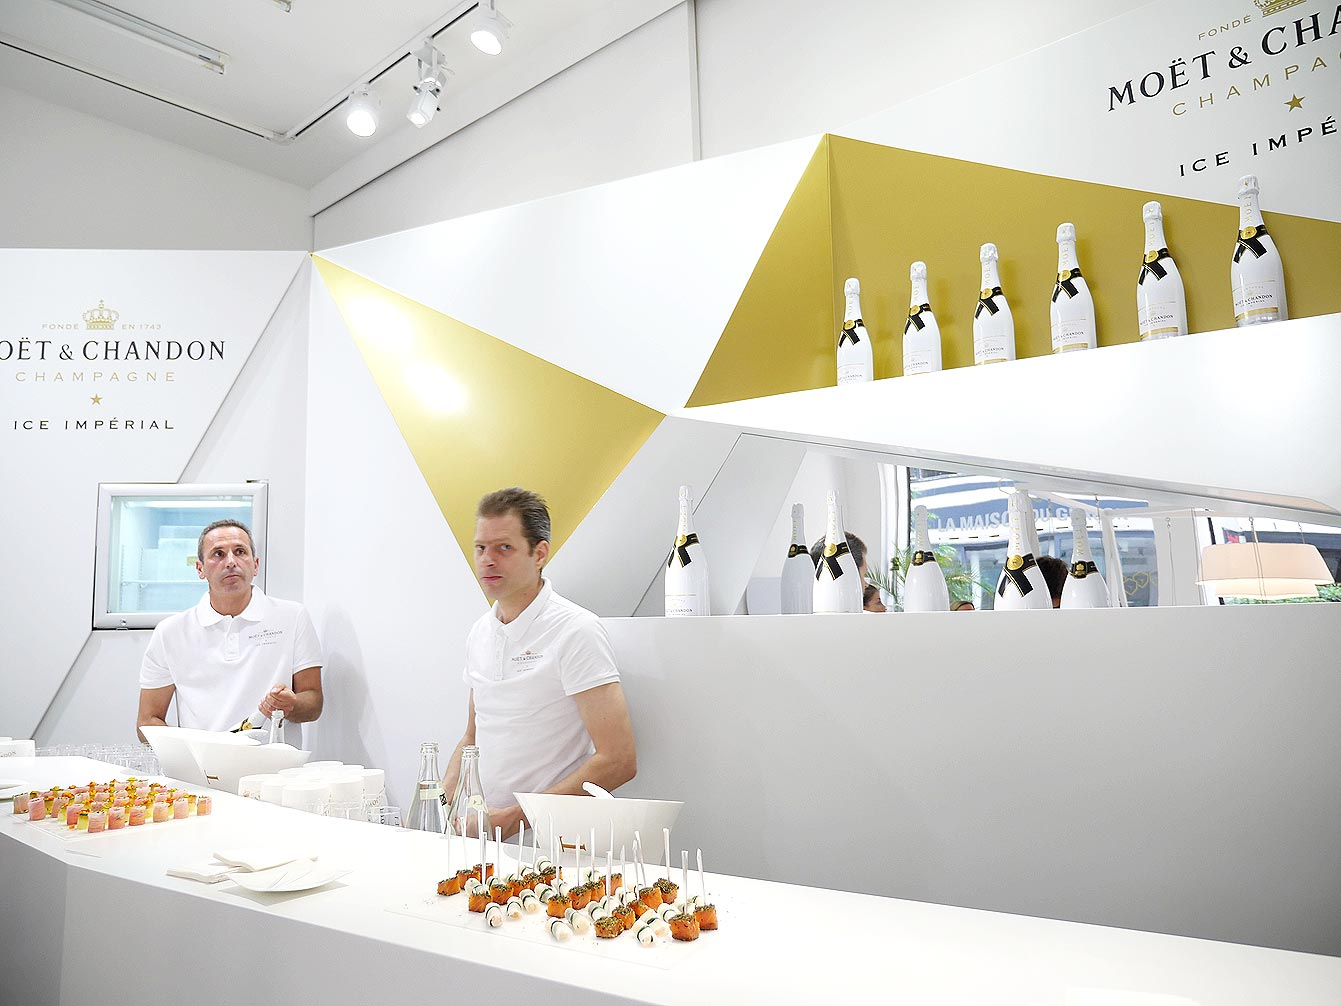 moet-chandon-maison-glacon-09